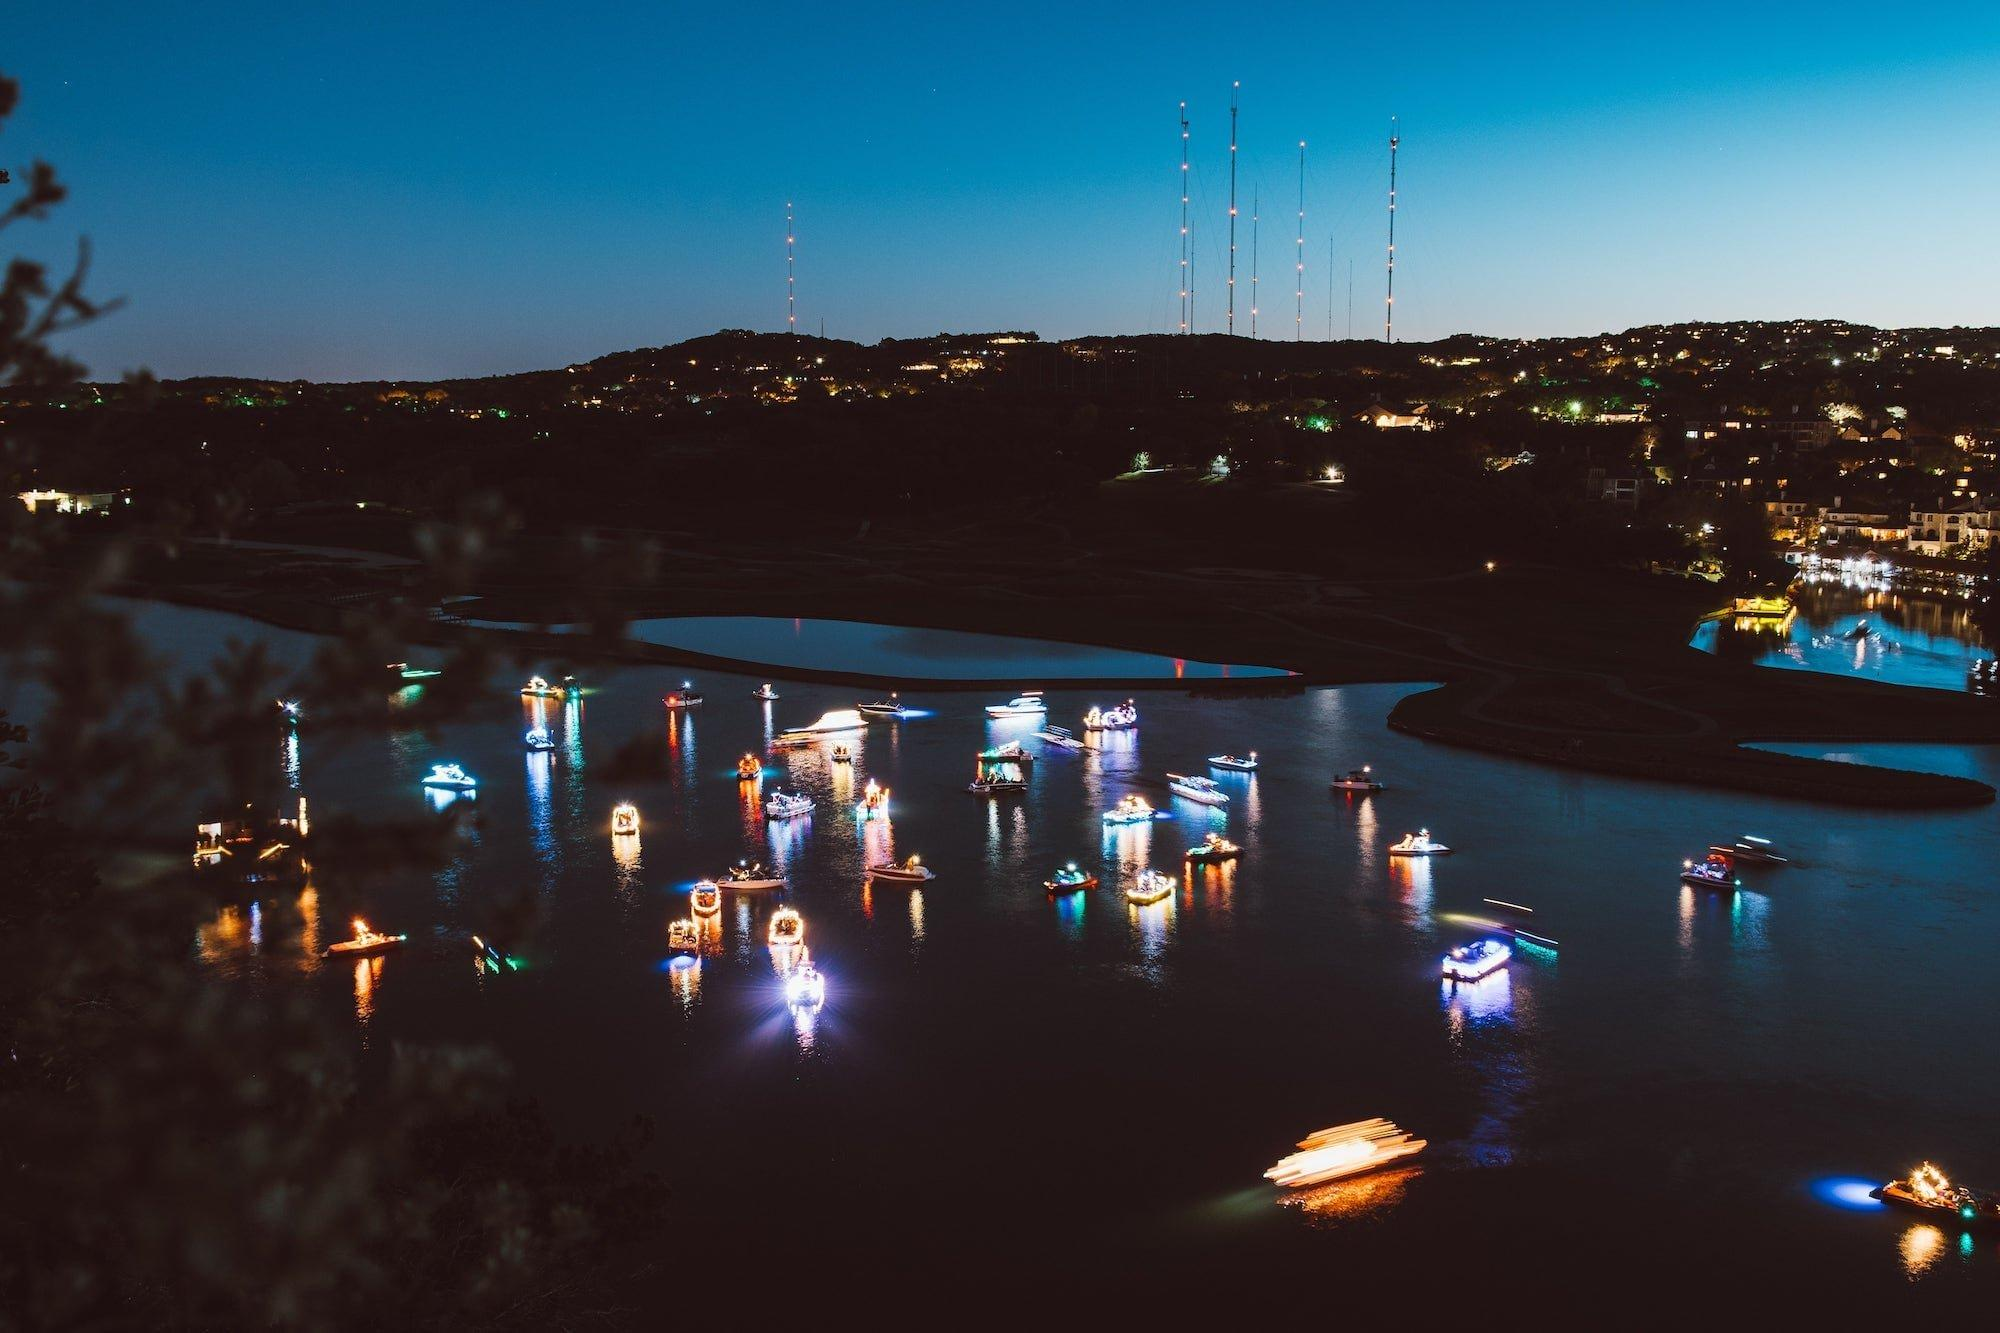 Boats in water decorated for holidays